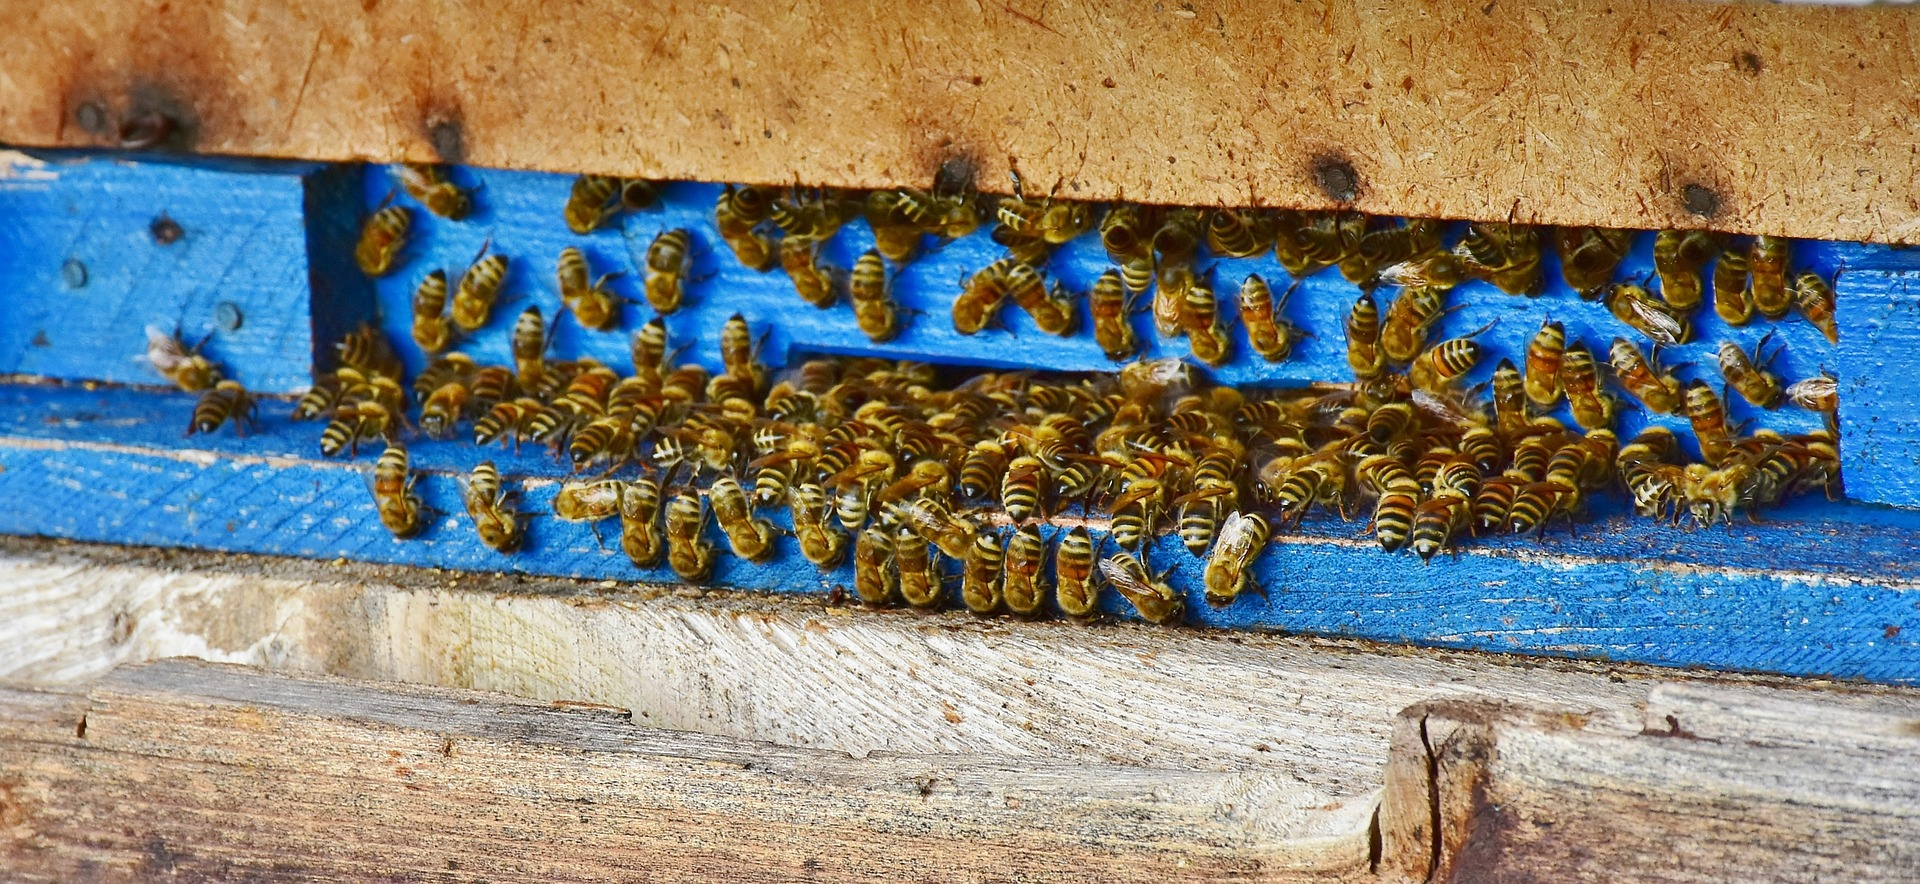 bees-3609059_1920